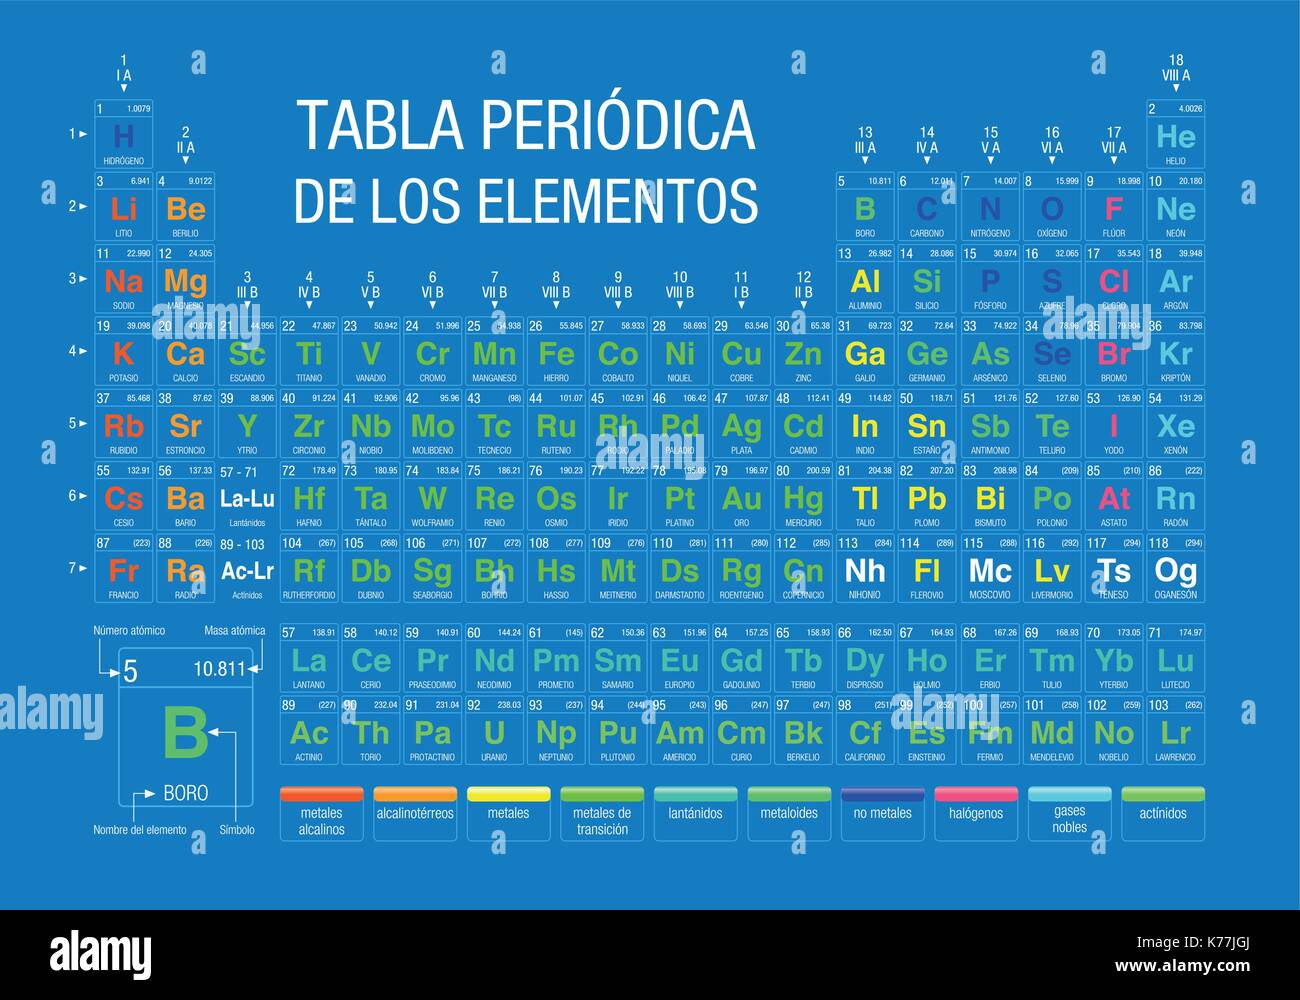 Tabla periodica de los elementos periodic table of elements in tabla periodica de los elementos periodic table of elements in spanish language on blue background with the 4 new elements included urtaz Gallery